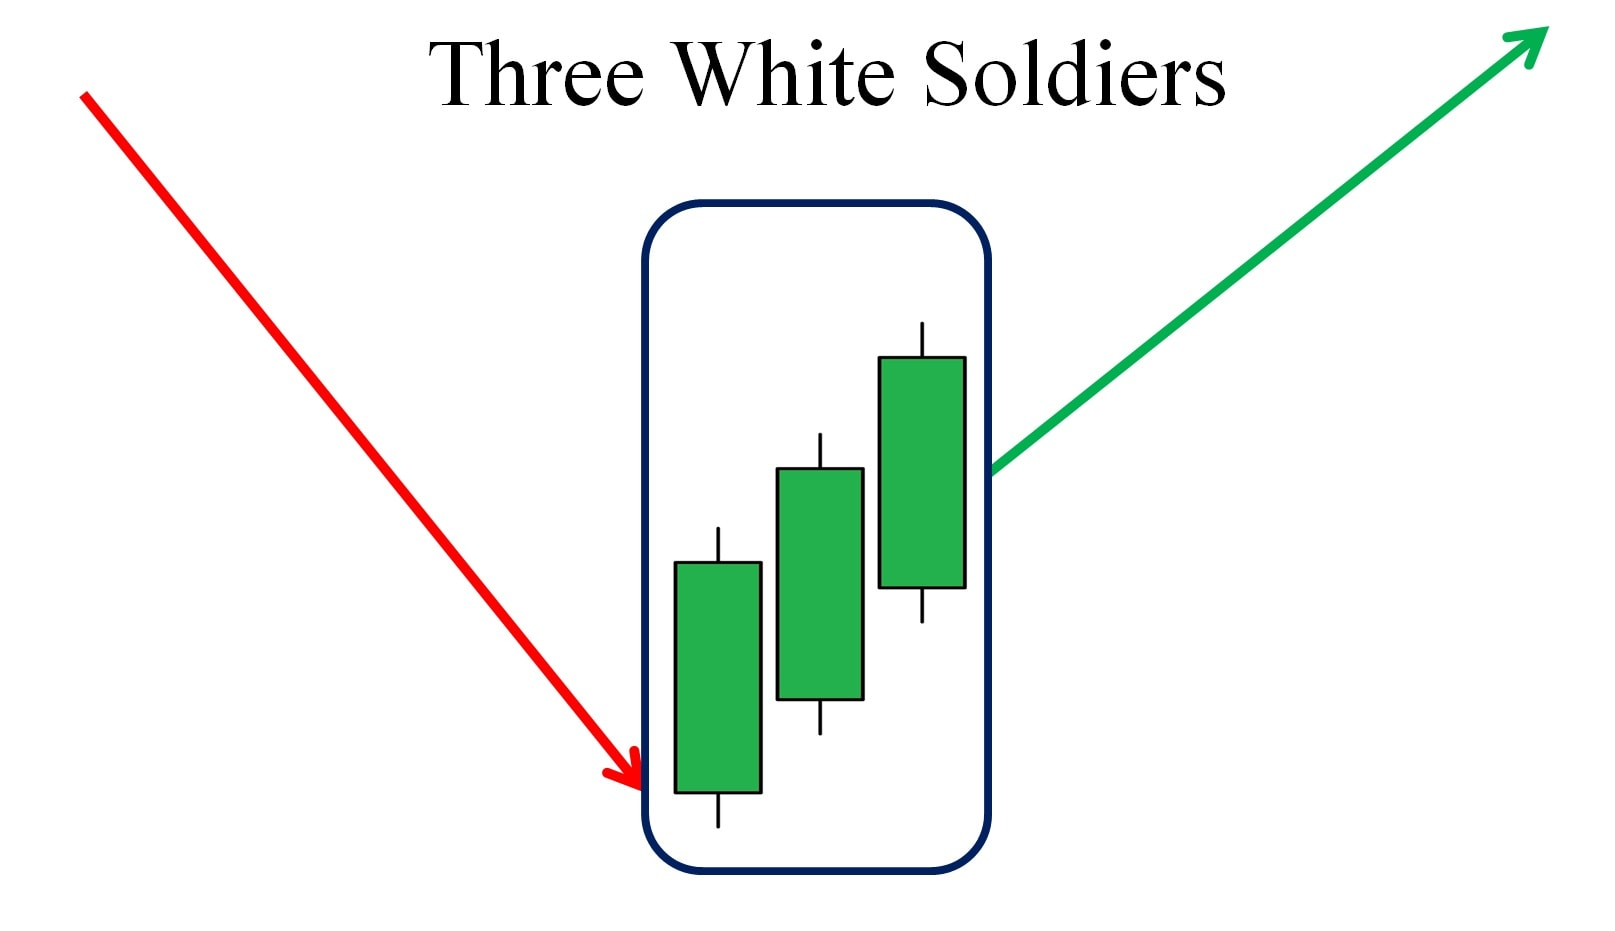 What is Three White Soldiers?